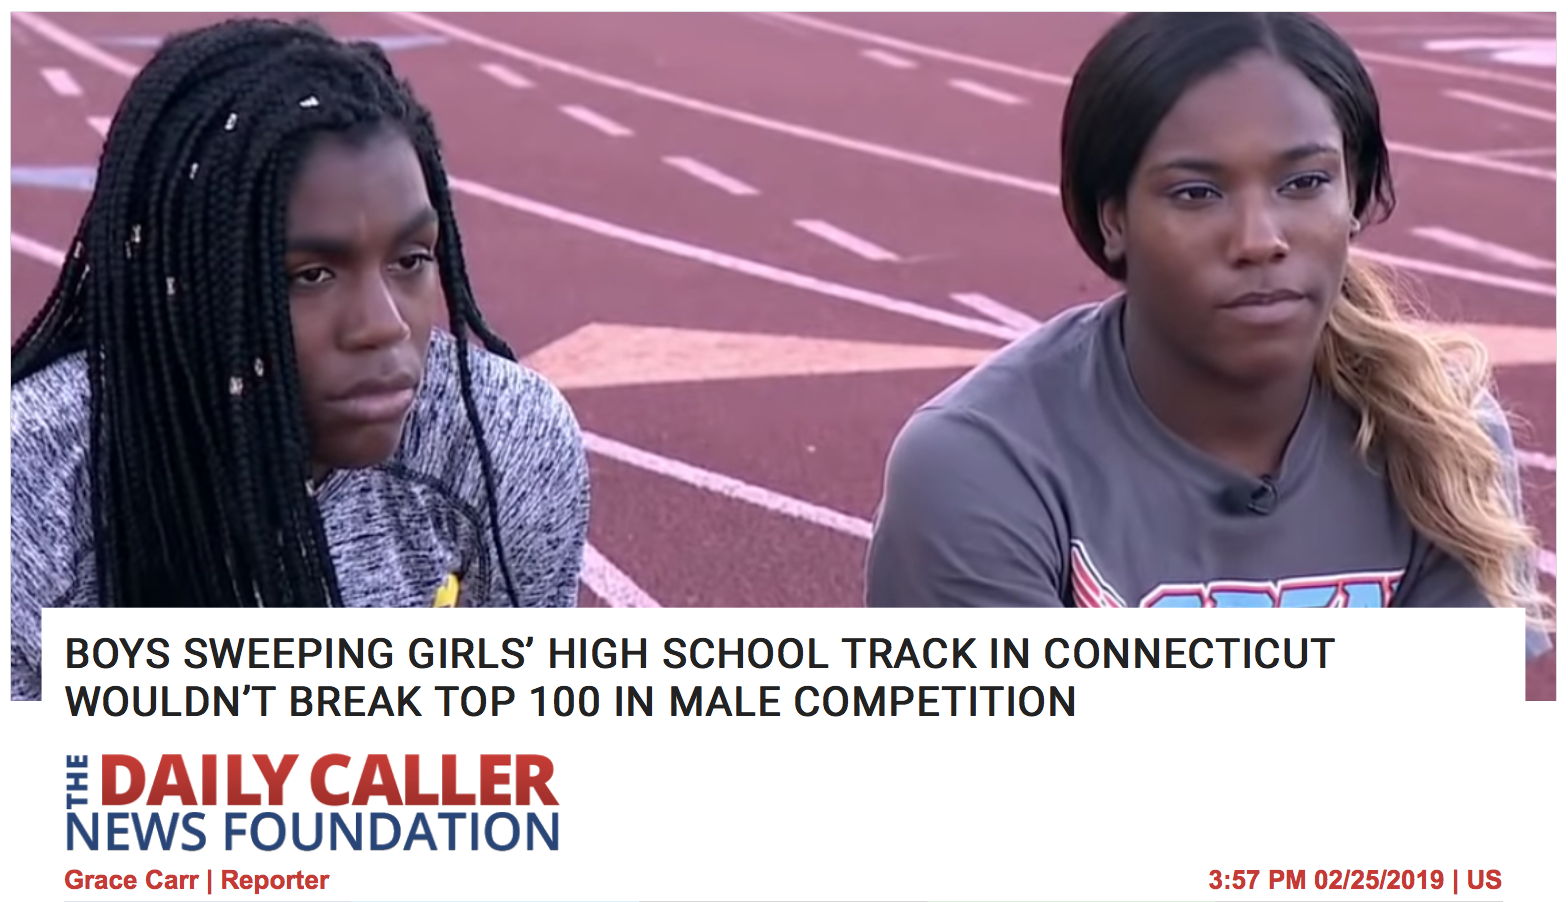 ( Daily Caller  headline) BOYS SWEEPING GIRLS' HIGH SCHOOL TRACK IN CONNECTICUT WOULDN'T BREAK TOP 100 IN MALE COMPETITION